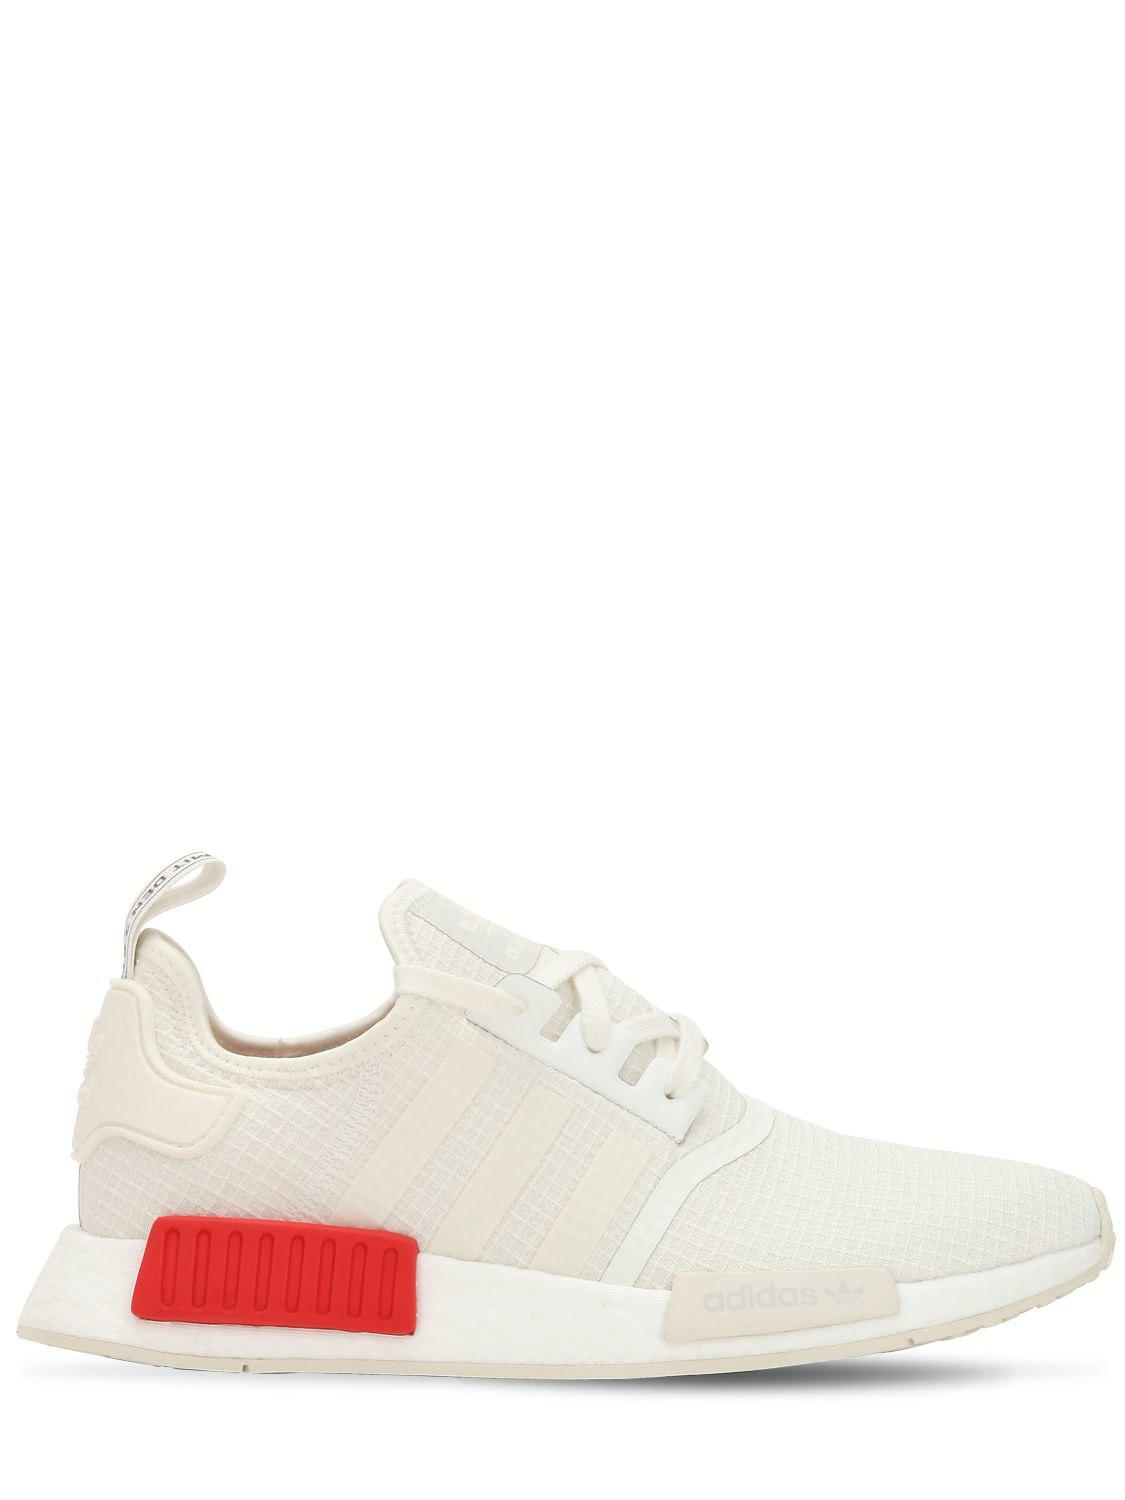 814b44ba07a42c Adidas Originals Nmd R1 Sneakers in White for Men - Lyst